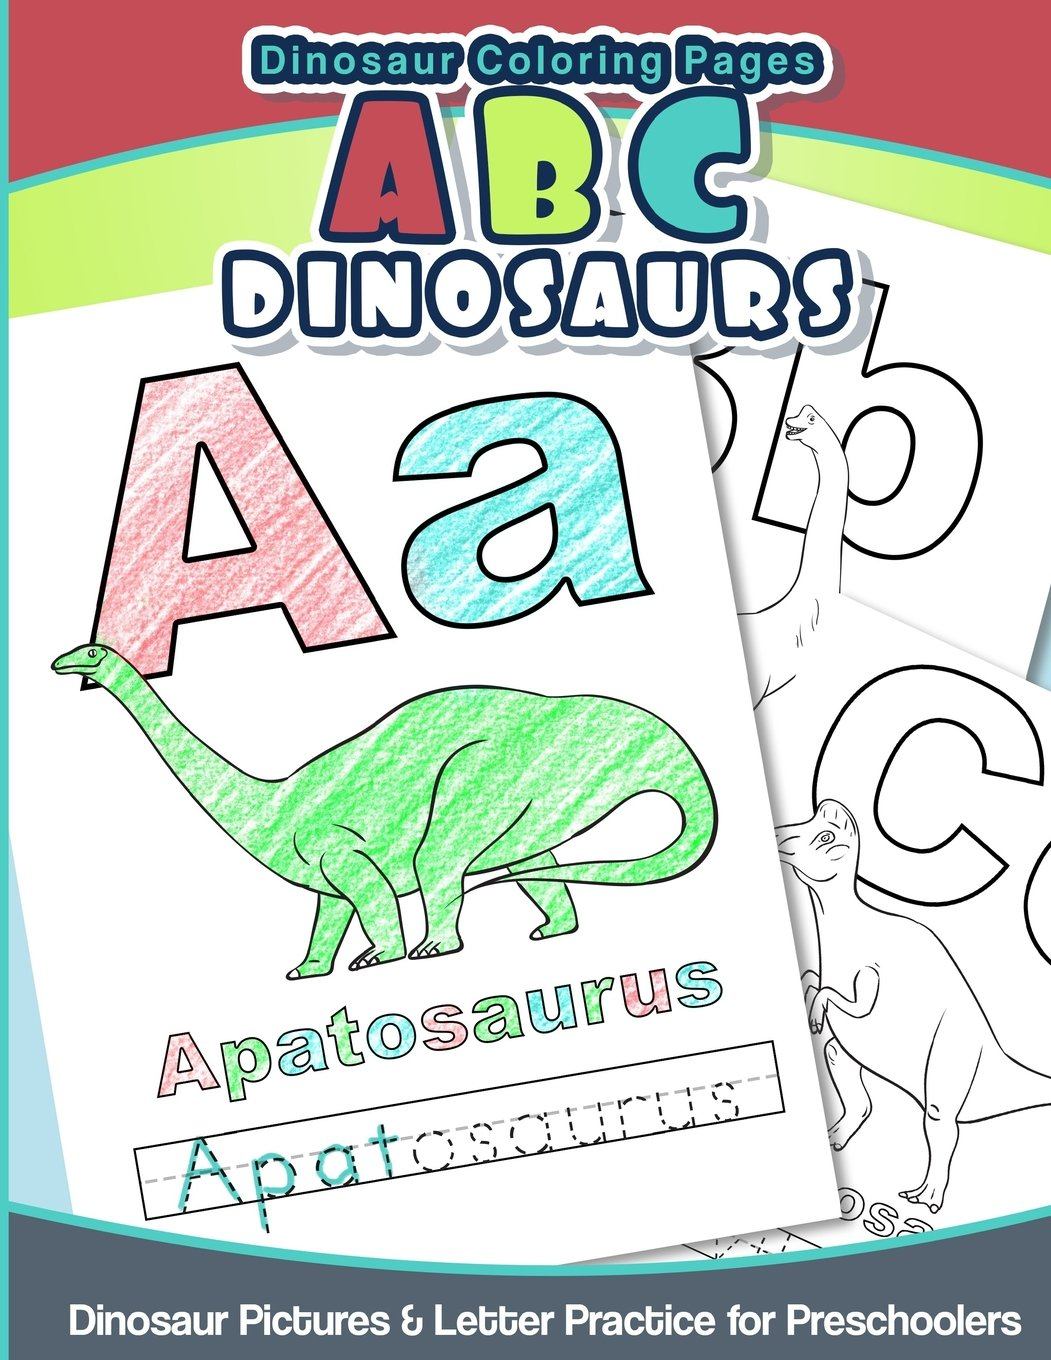 Dinosaur Coloring Pages ABC Dinosaurs: Dinosaur Pictures & Letter ...